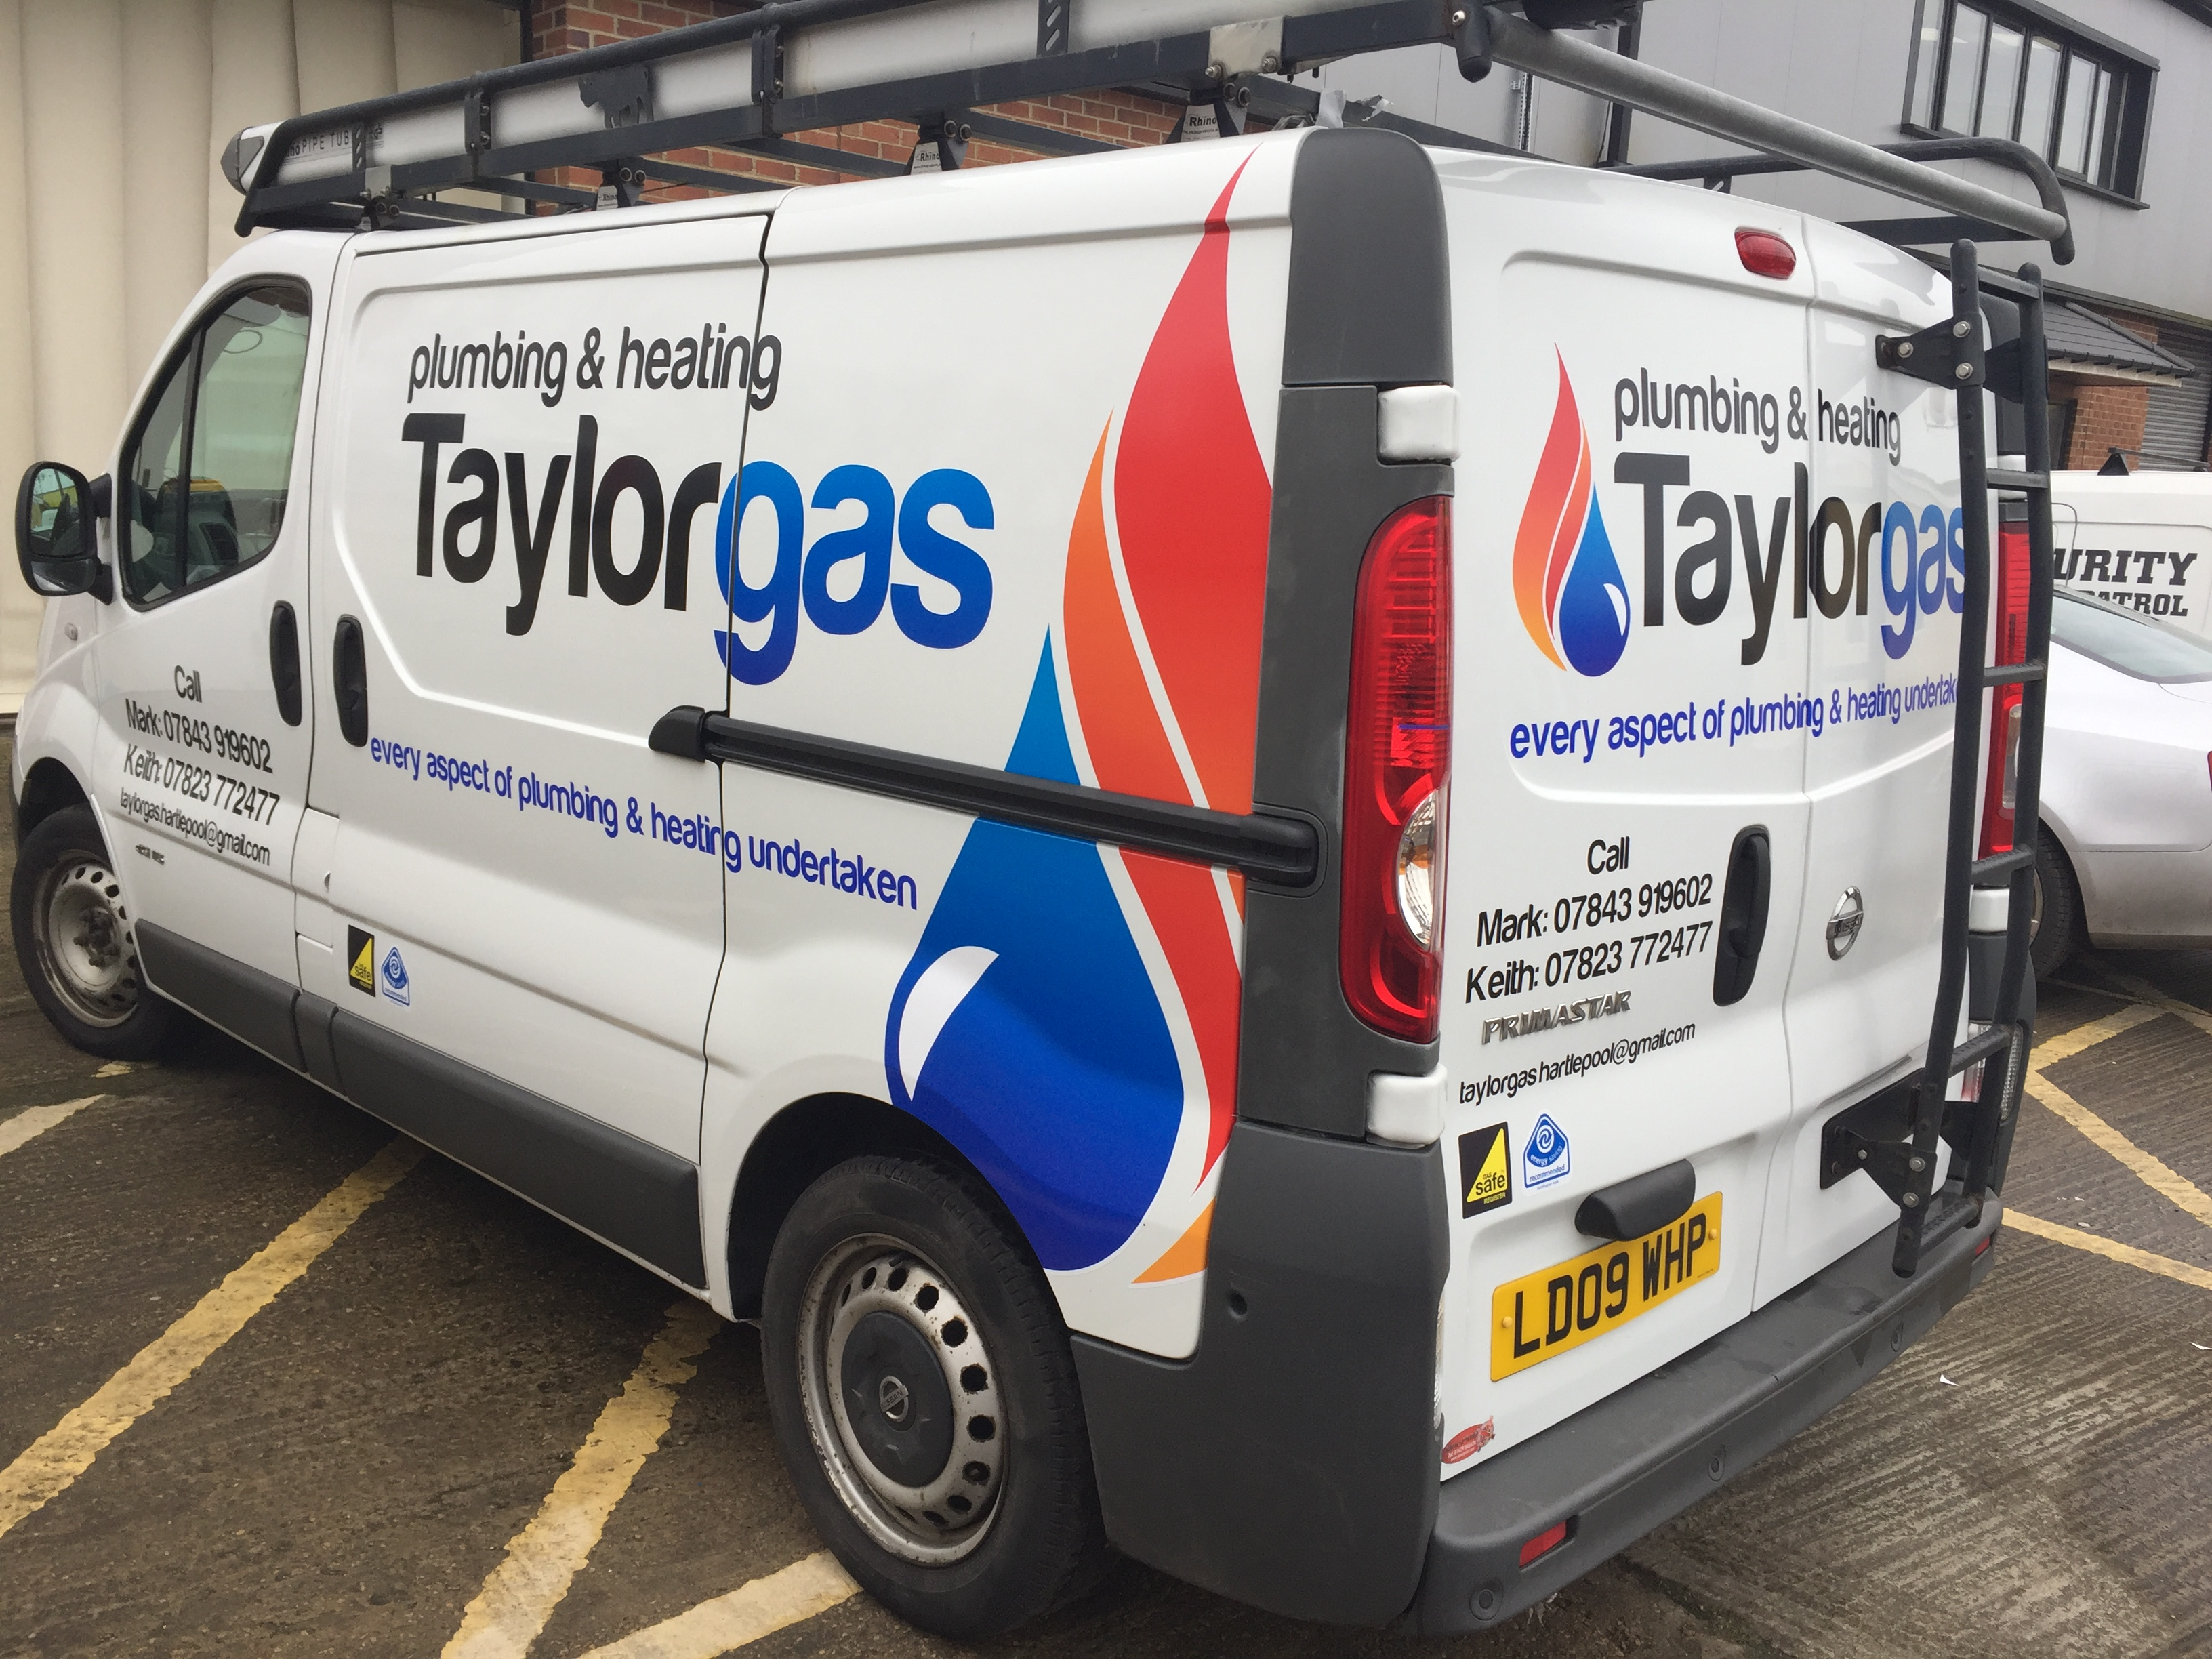 Vehicle graphics and logo rebranding